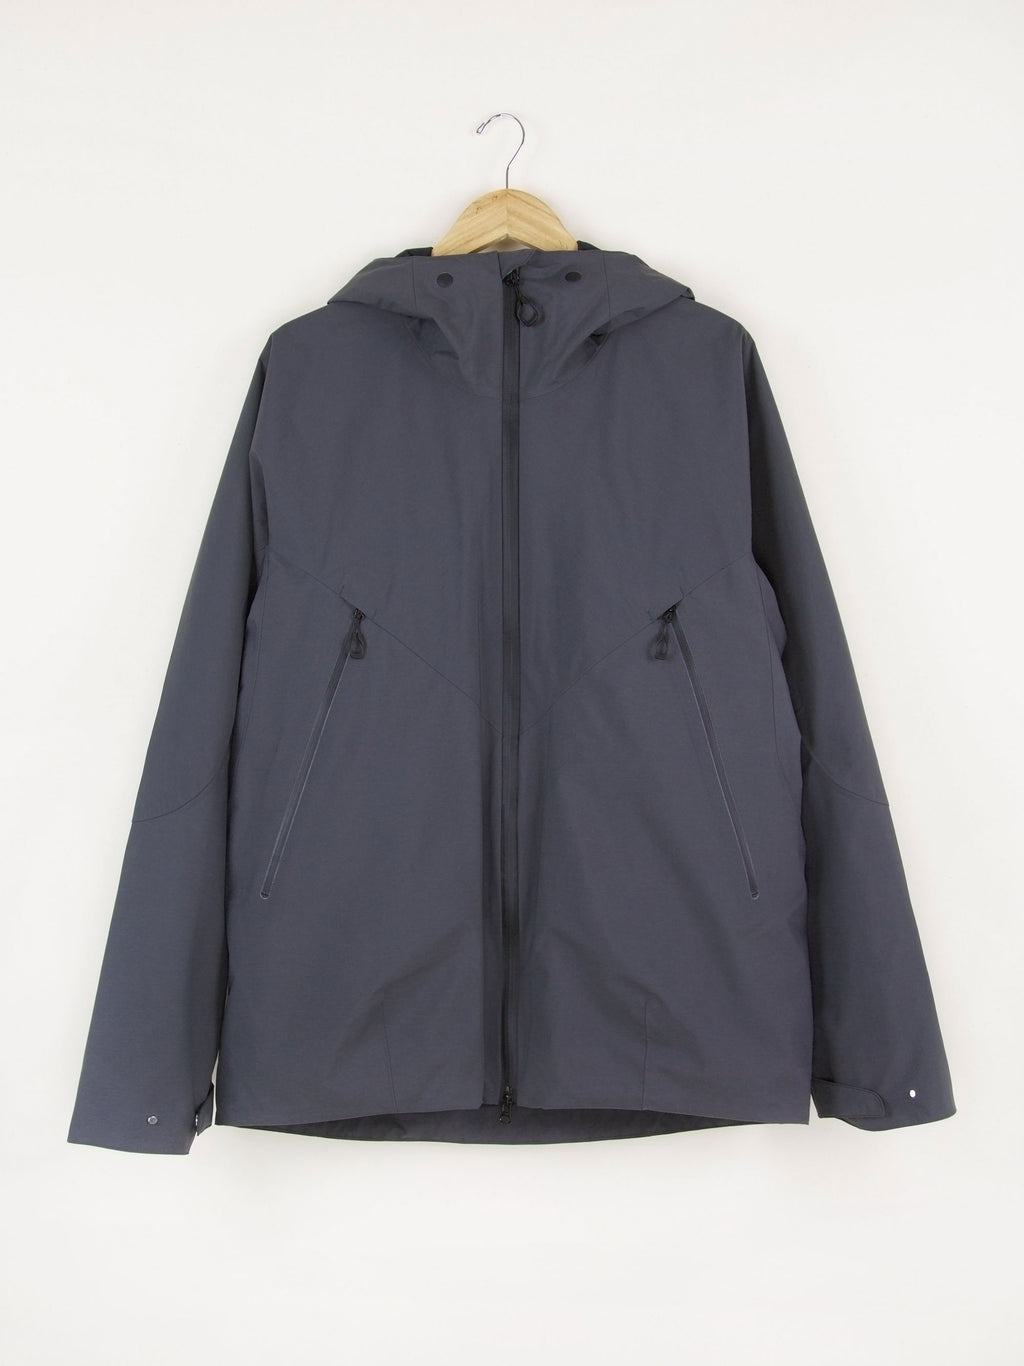 Namu Shop - Goldwin Insulation Mountain Jacket